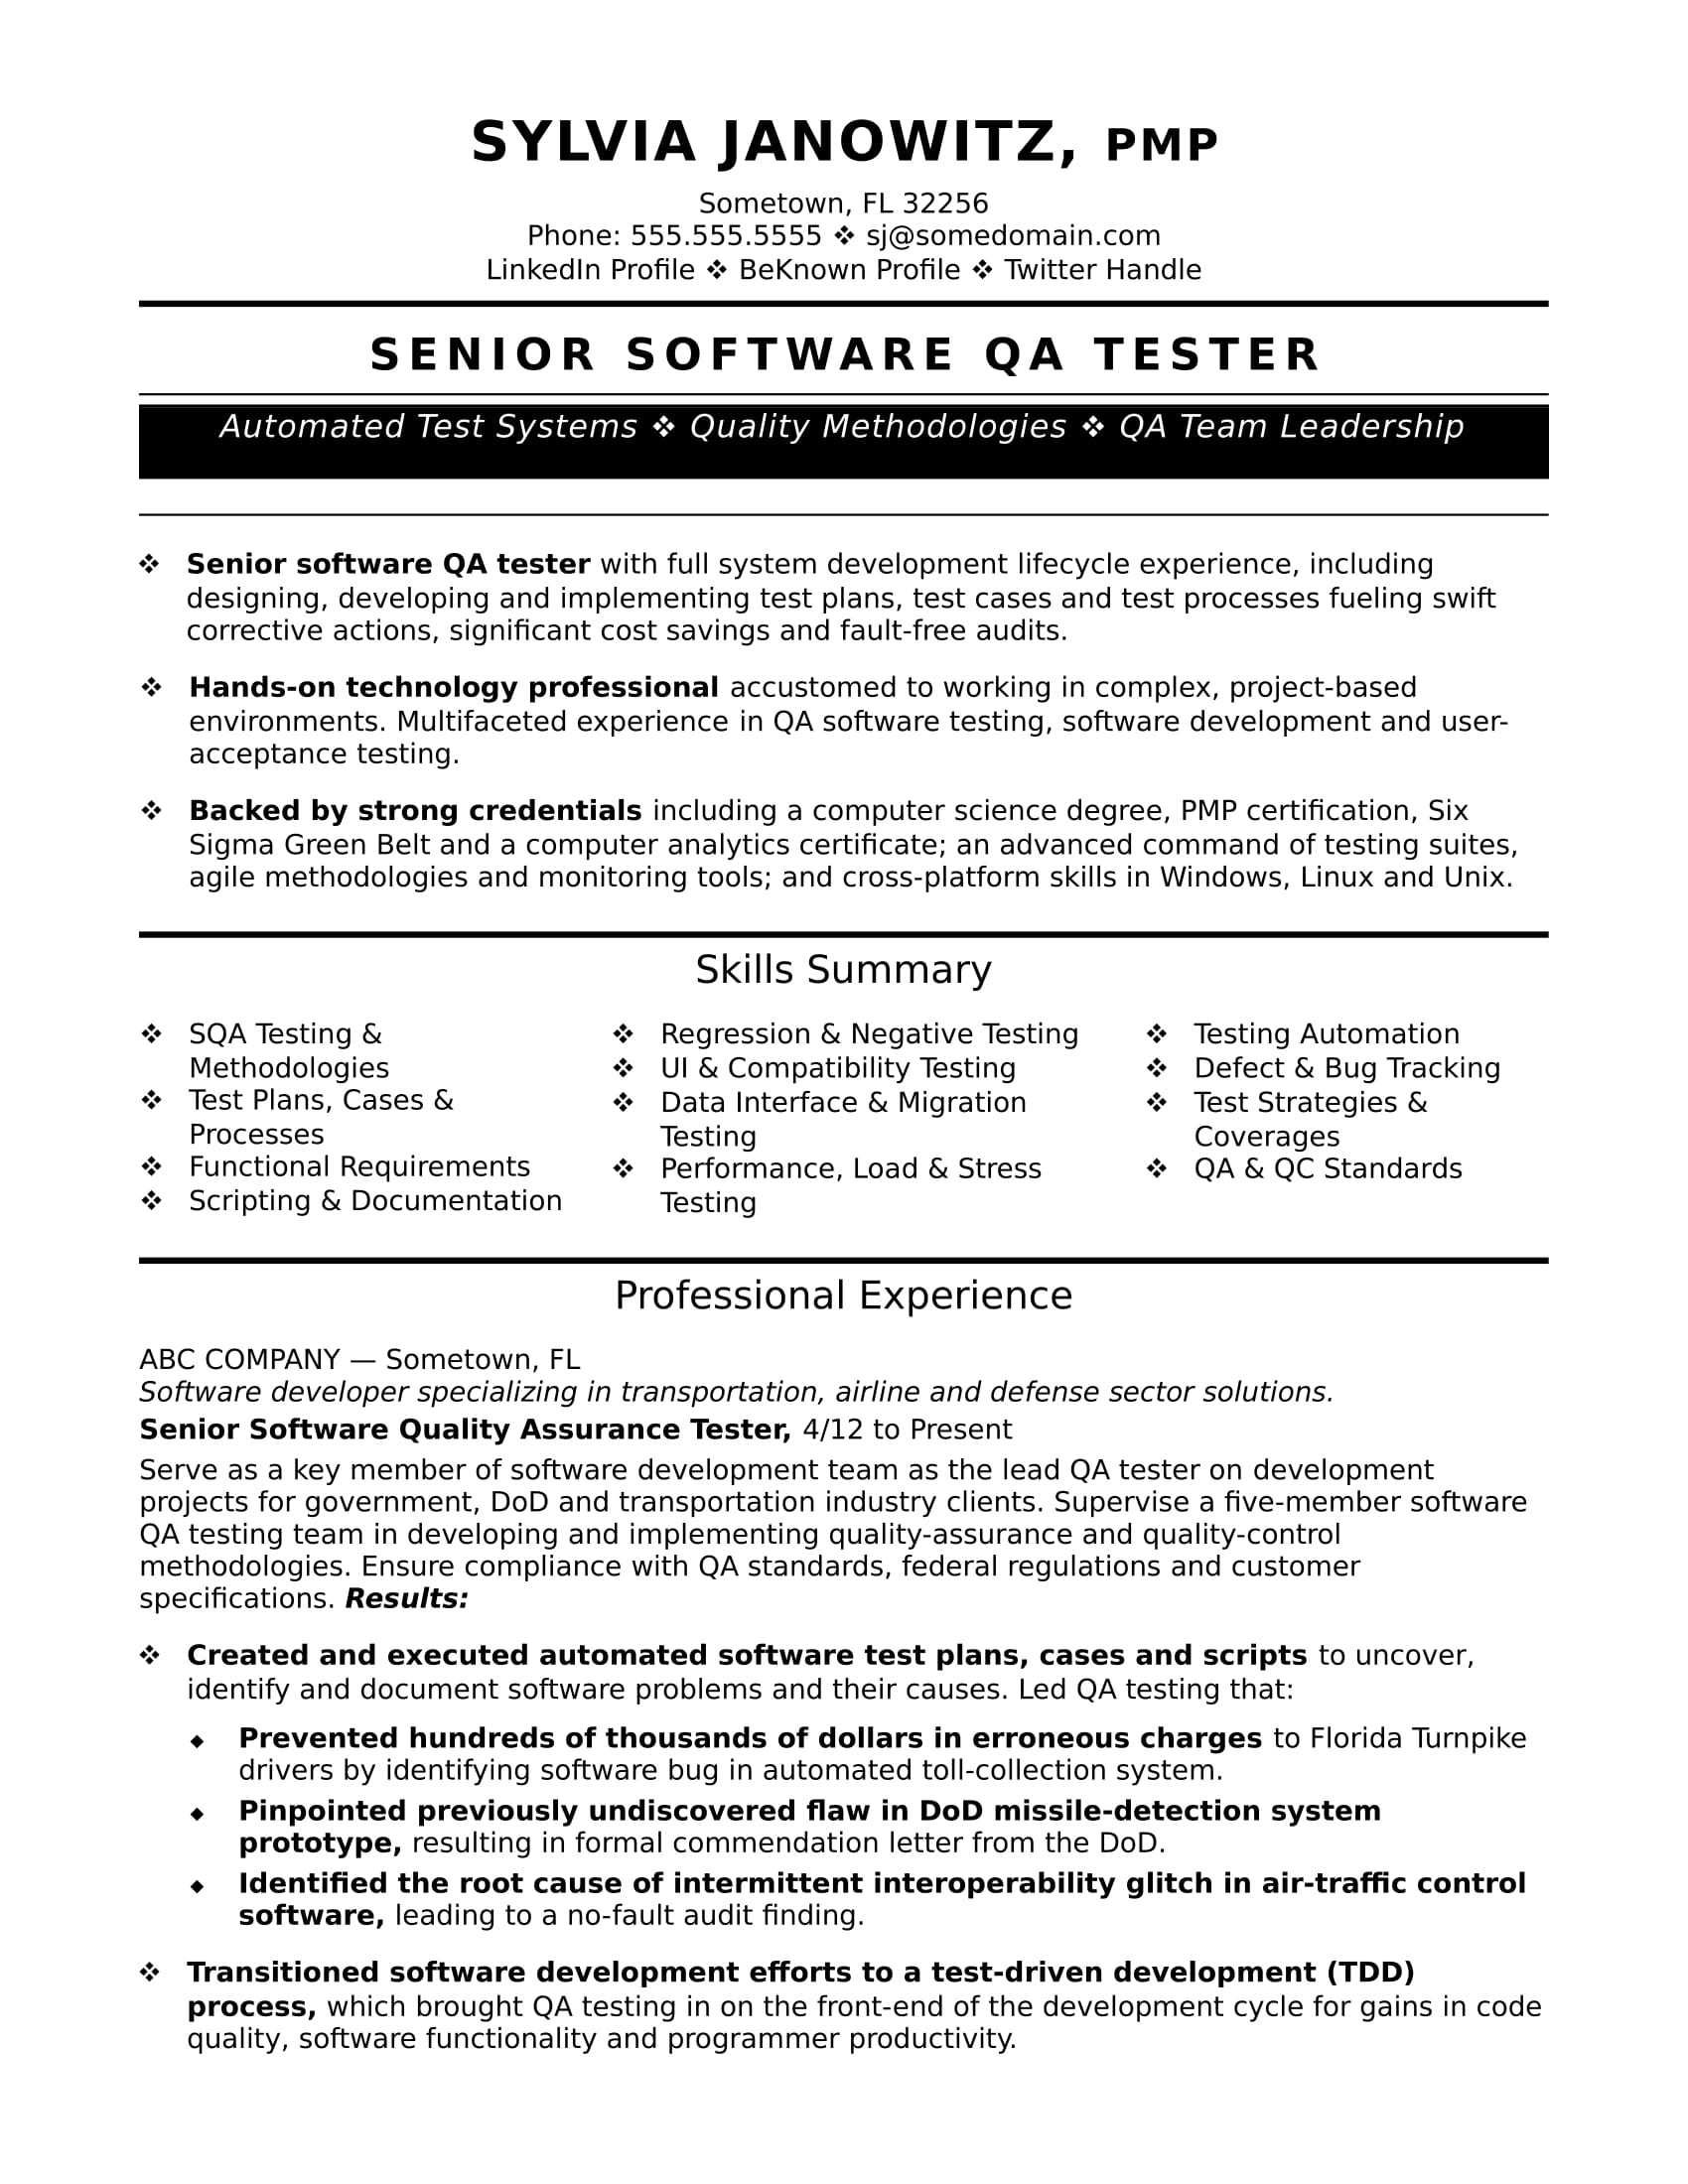 experienced qa software tester resume sample monster testing points nicu retail assistant Resume Mobile Testing Resume Points